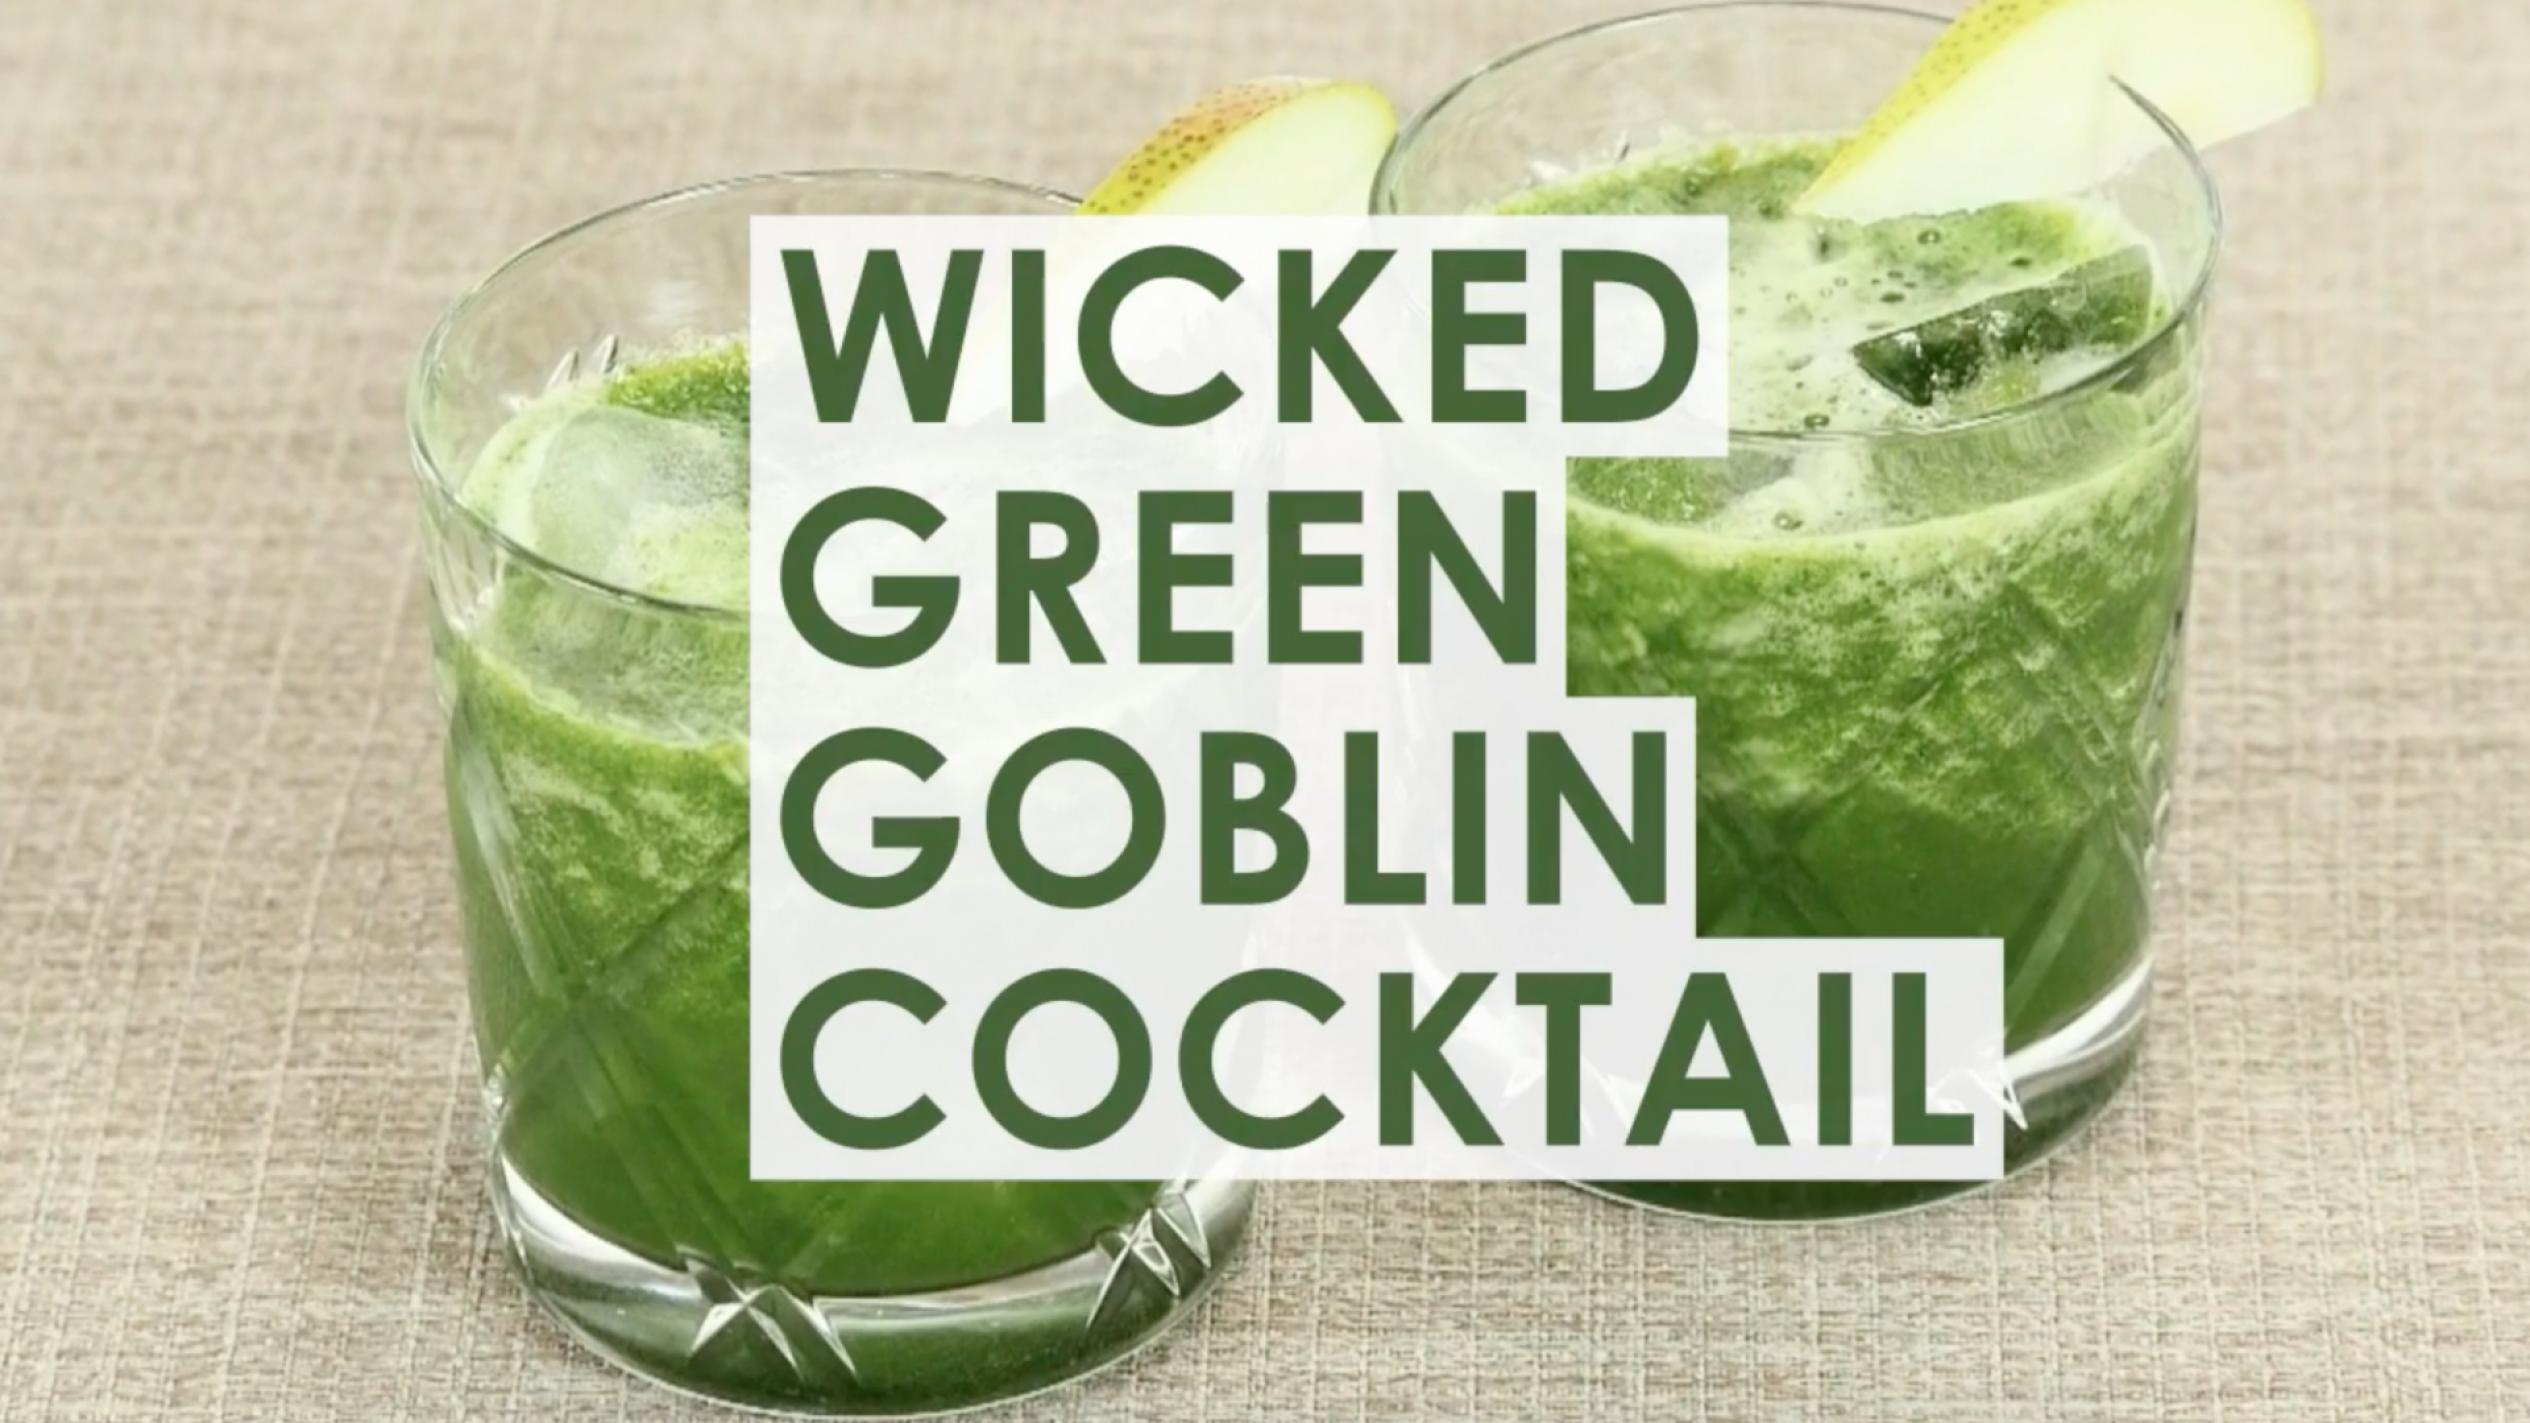 Wicked Green Goblin Cocktail